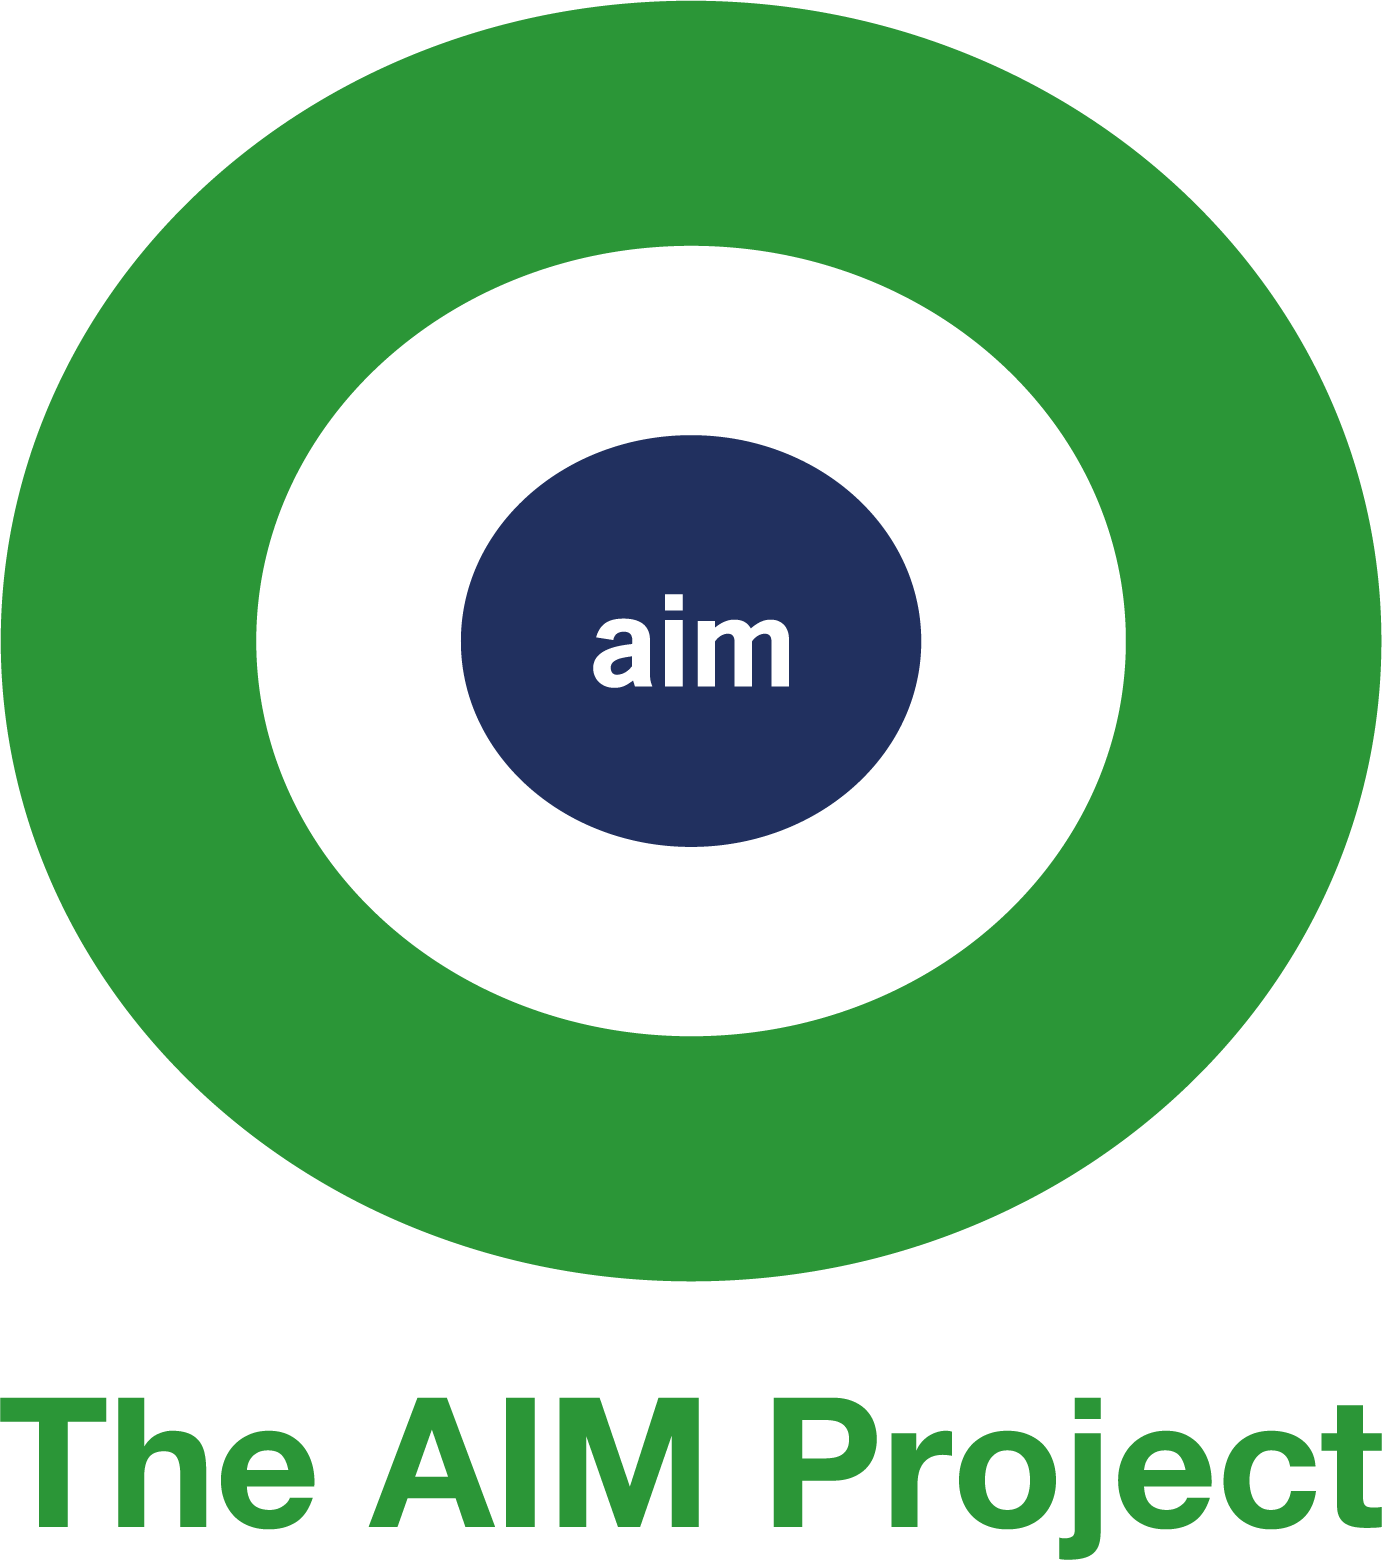 The Aim Project